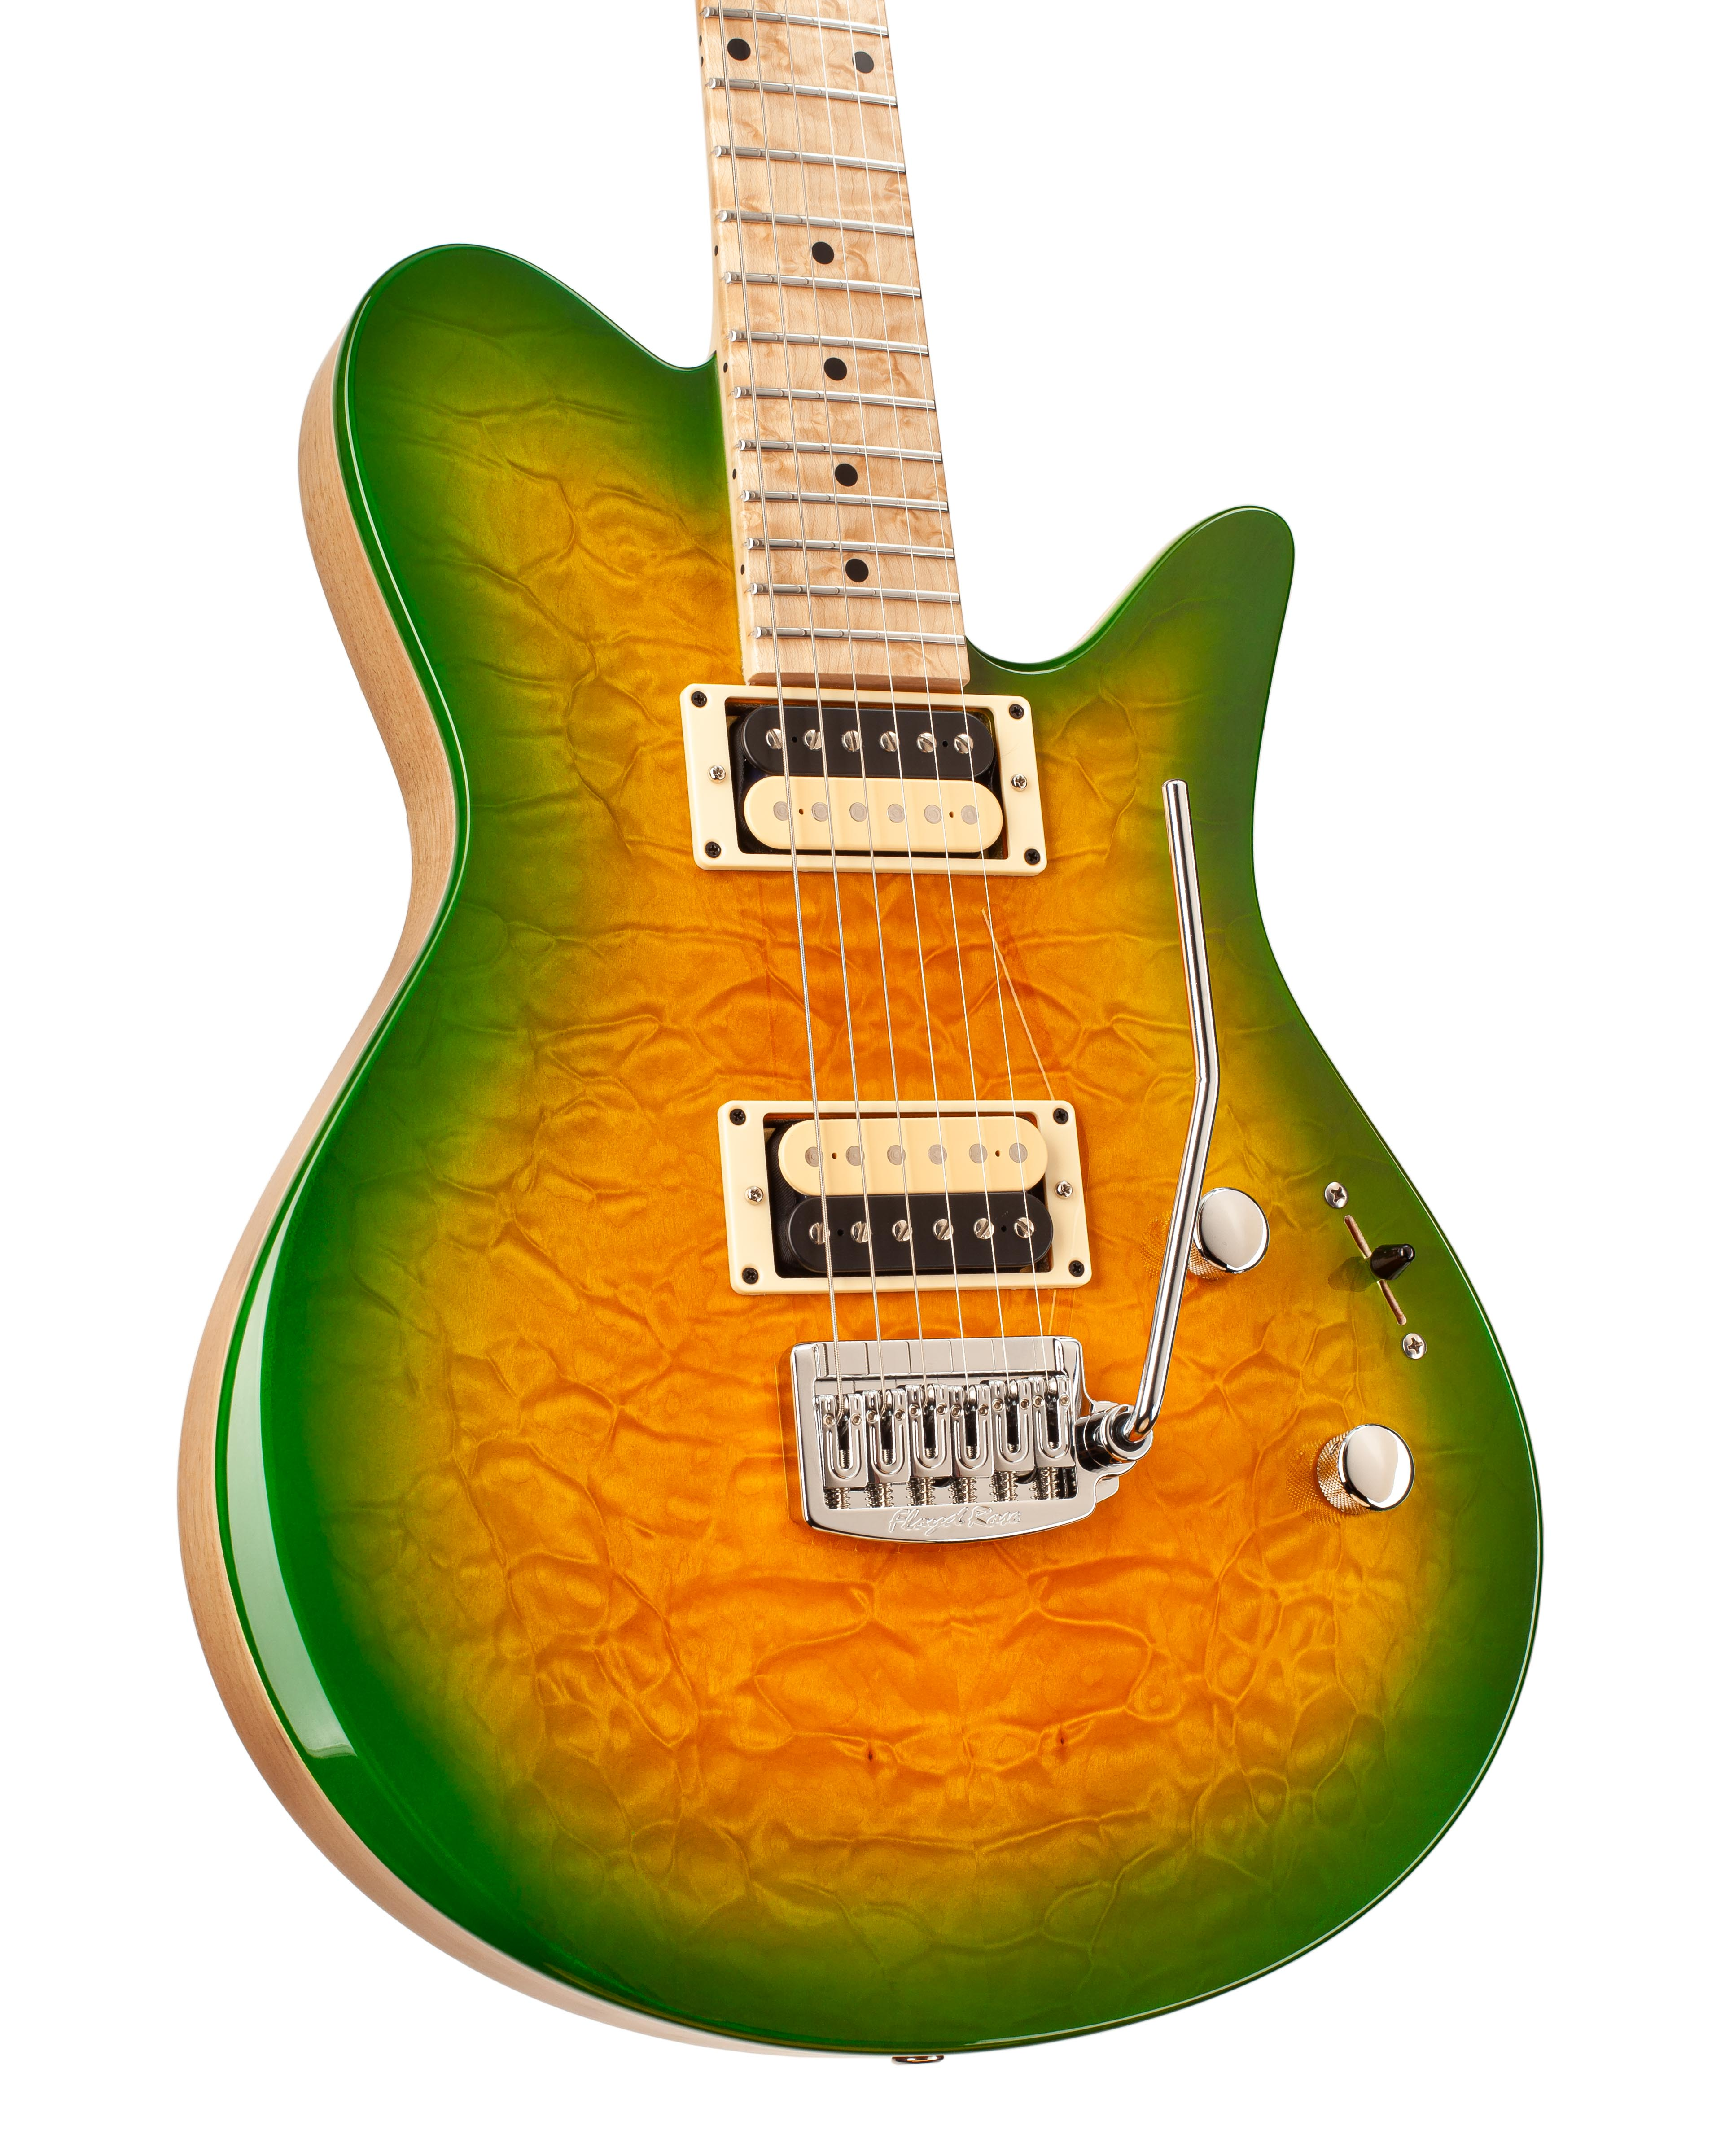 Electric Guitar With Green Vignette on Body